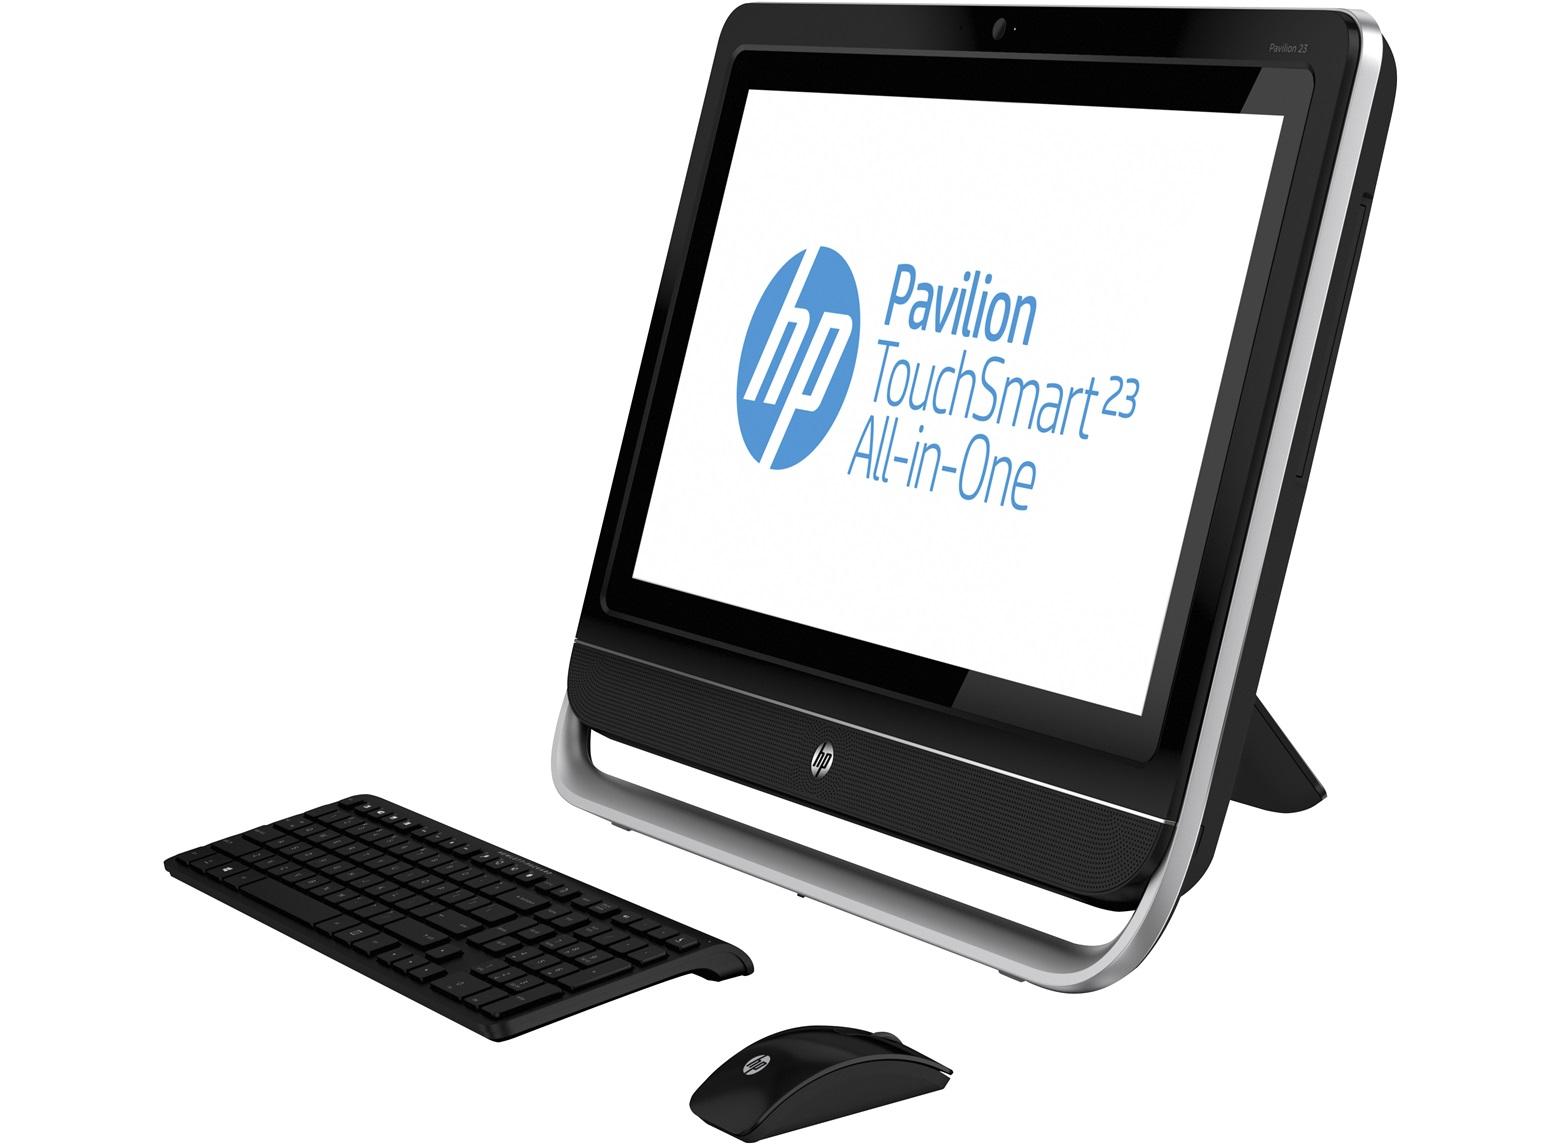 Venta De Ordenadores De Mesa Hp Pavilion Touchsmart 23 F203es All In One Tecnoaccesible